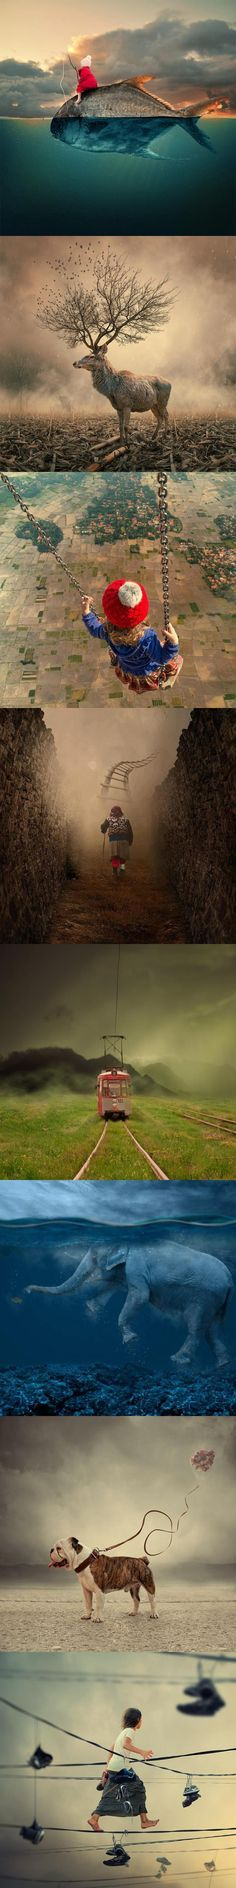 This collection is thought provoking.  ~  Fotografías surrealistas que no existen. Imágenes por Ionut Caras.